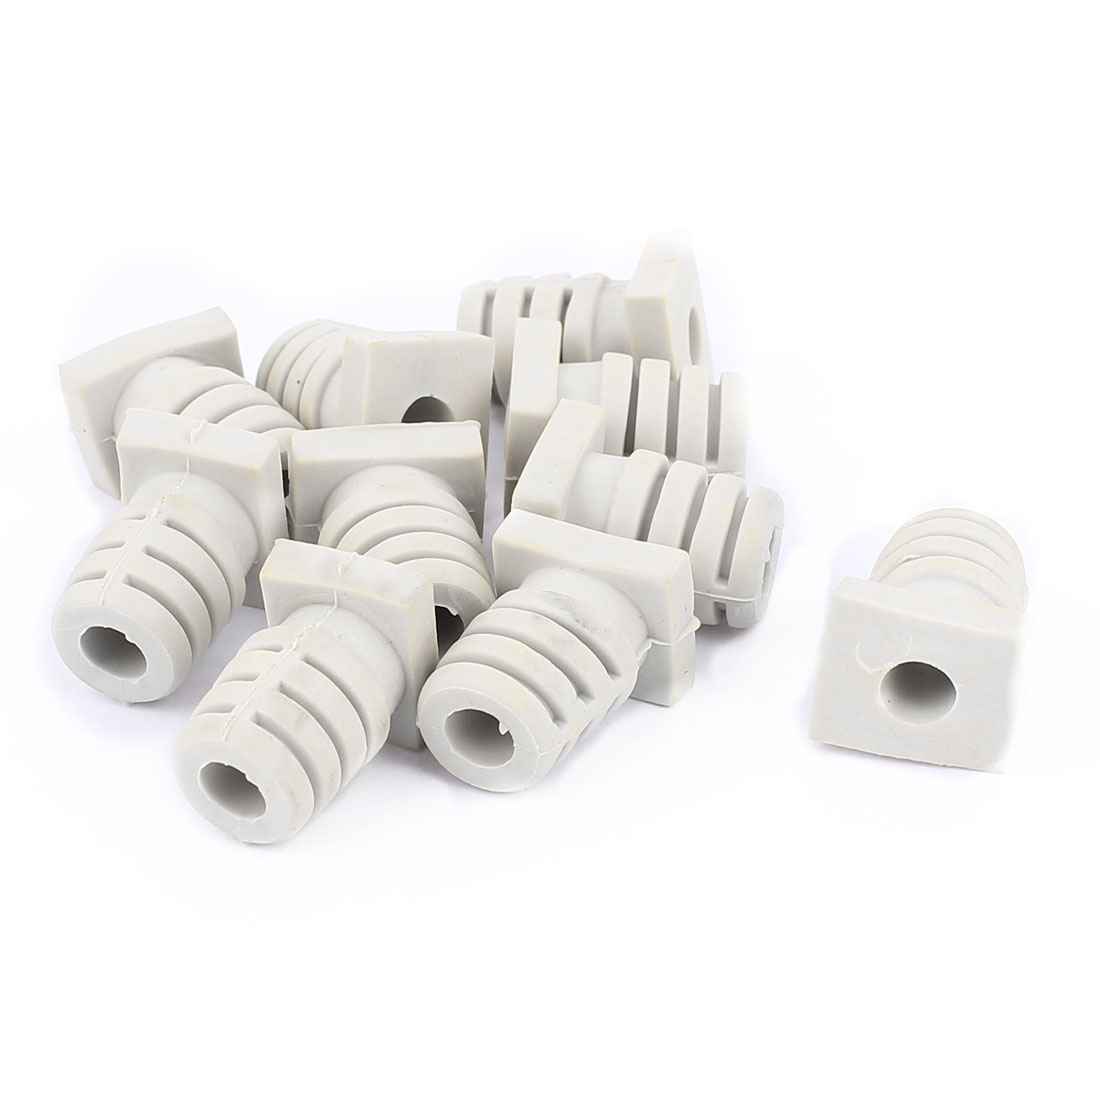 UXCELL 10Pcs 5Mm Inner Dia Rubber Strain Relief Cord Boot Protector Cable Sleeve Beige Boot Wire Cable Sleeves Accessories